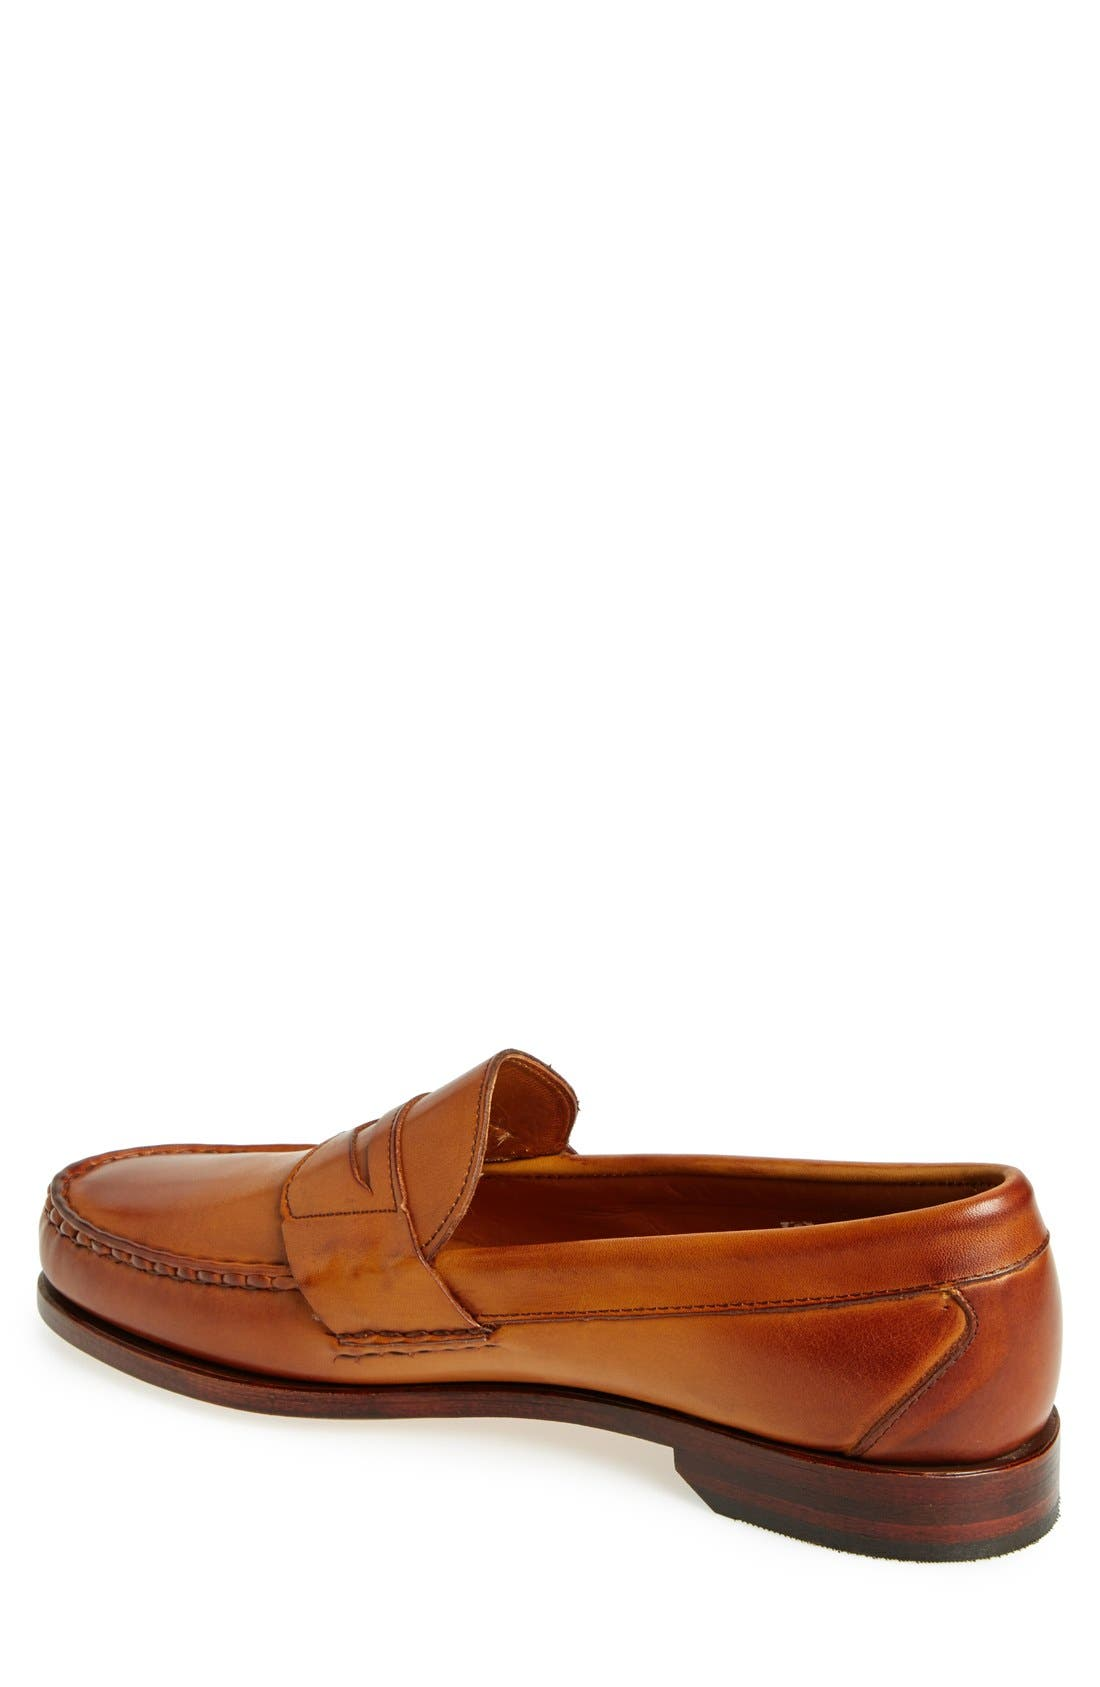 'Cavanaugh' Penny Loafer,                             Alternate thumbnail 2, color,                             WALNUT LEATHER